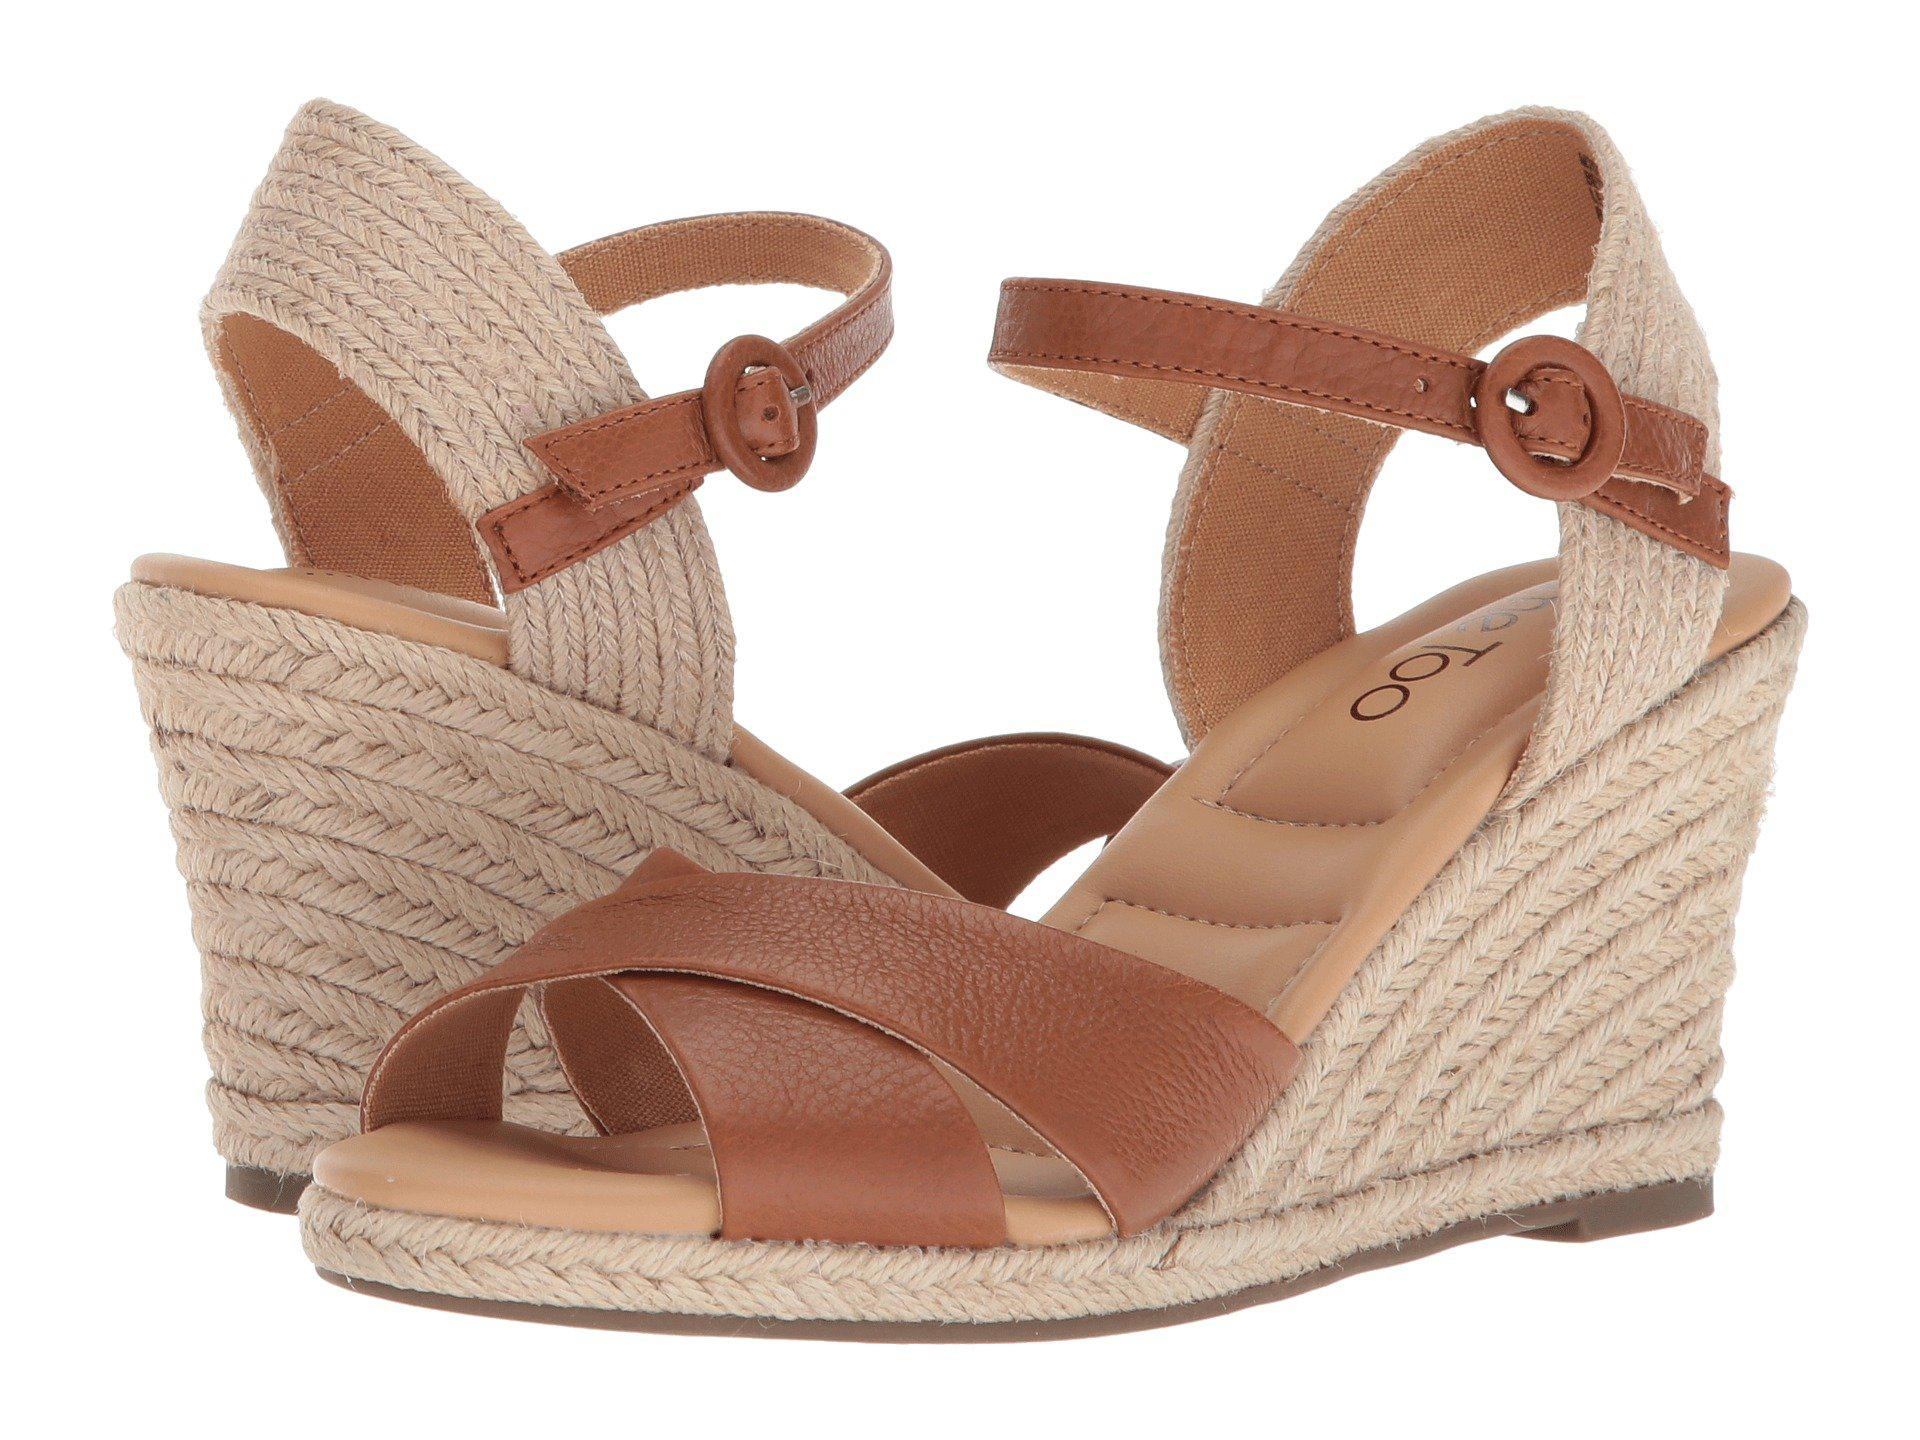 b4a0011bd93 Lyst - Me Too Bettina in Brown - Save 45%